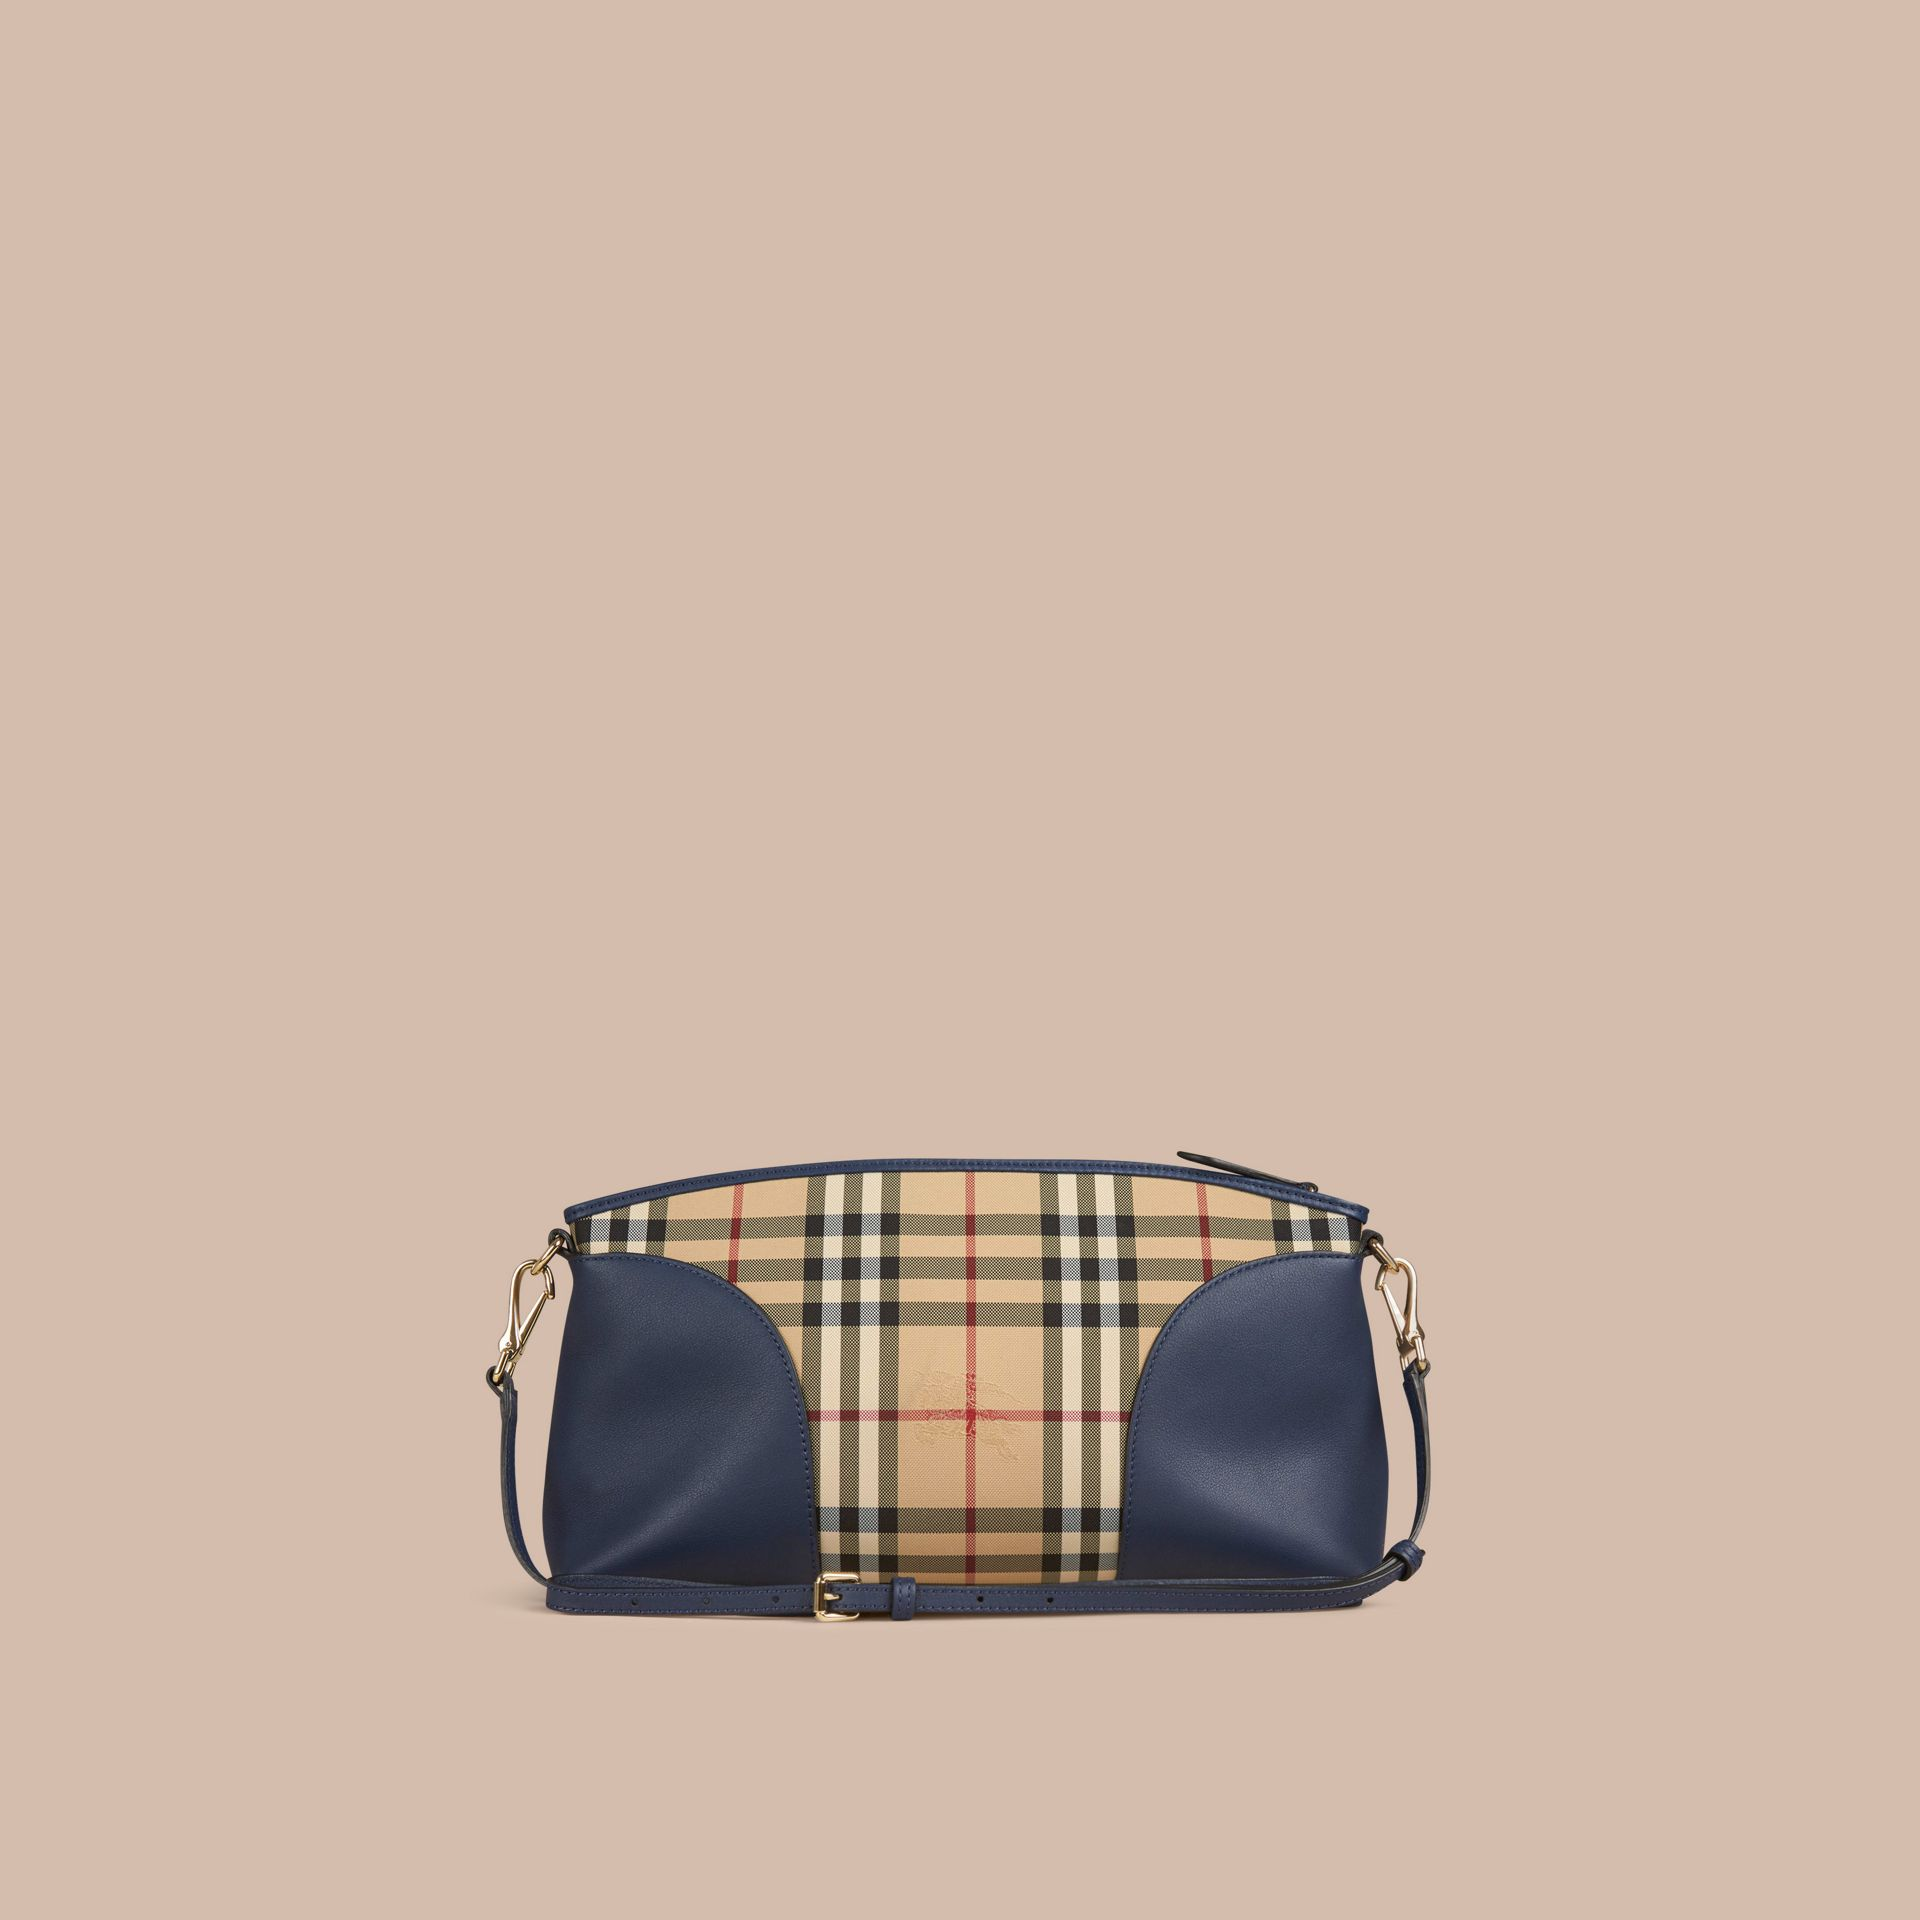 Honey/brilliant navy Horseferry Check and Leather Clutch Bag Honey/brilliant Navy - gallery image 4